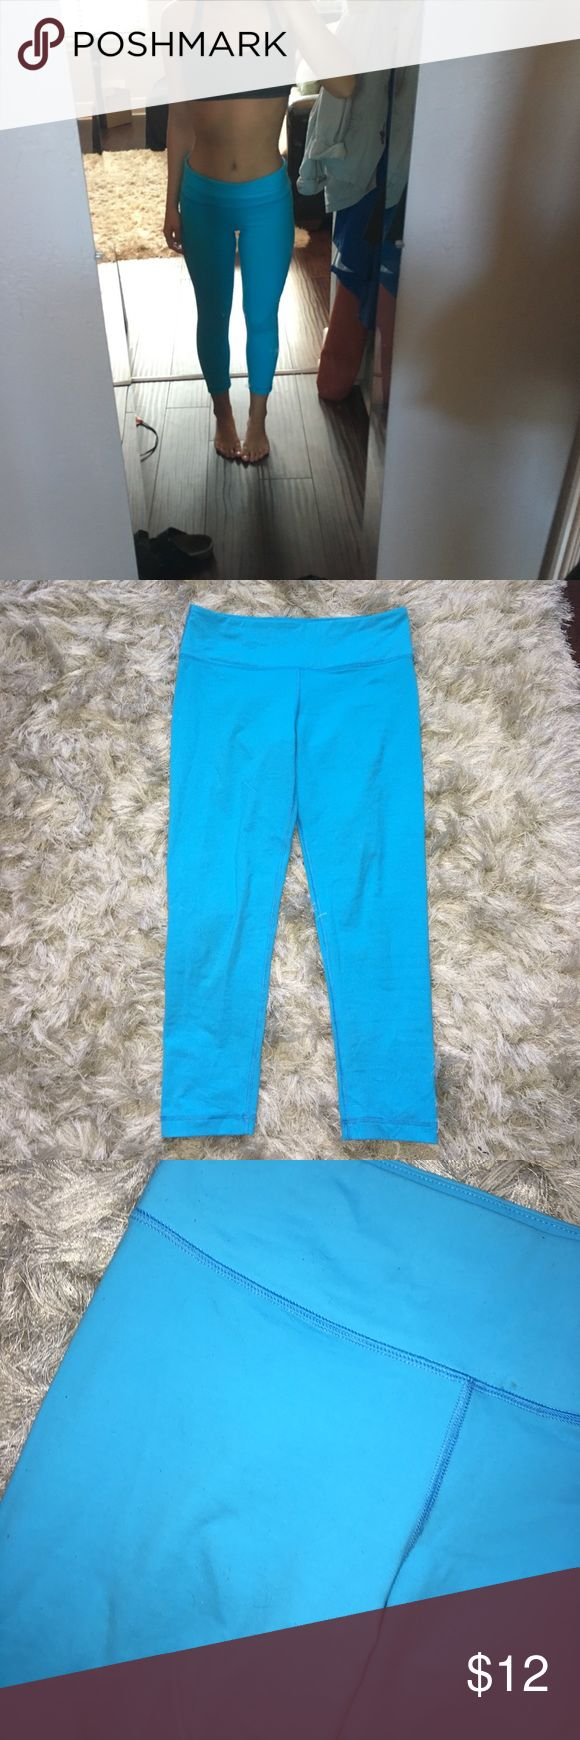 Bright blue athletic leggings SUPER comfortable super cute blue athletic leggings. Make you look tan & make your butt look great! Size small. 90 degrees by reflex is what the pants say. Pants Leggings